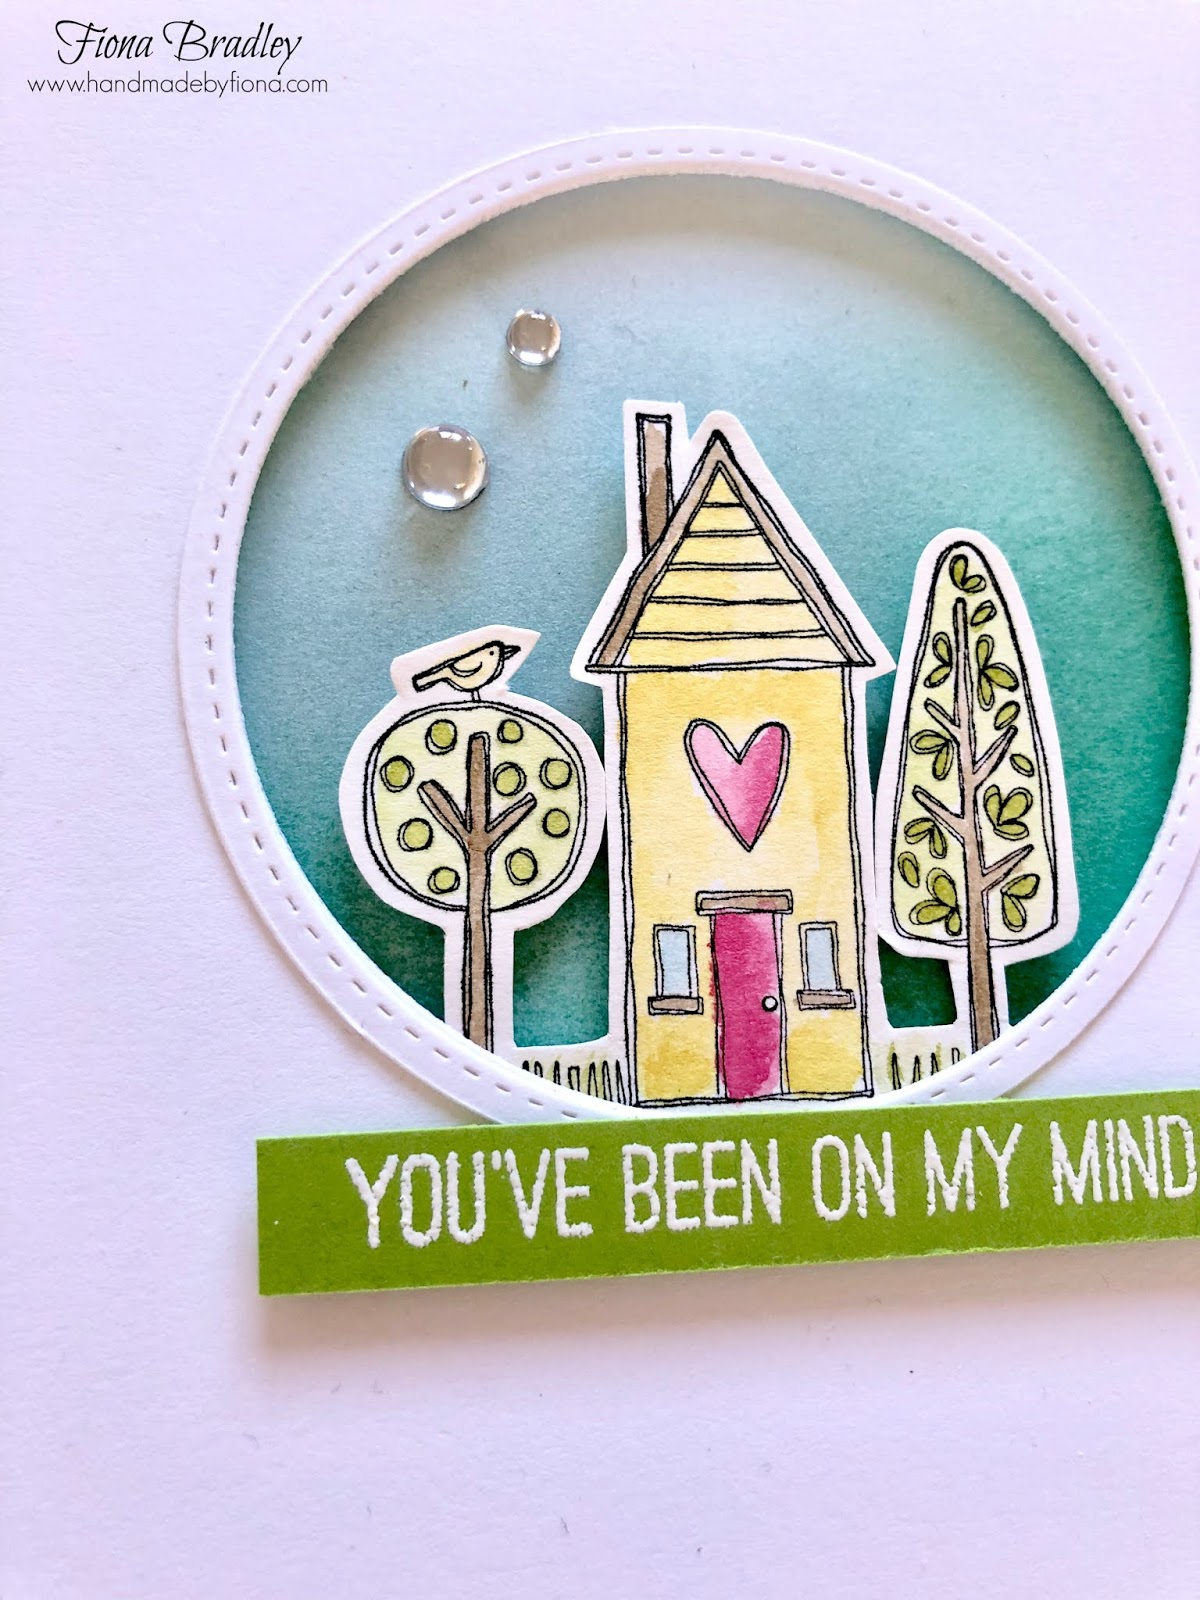 You've Been On My Mind - Handmade by Fiona